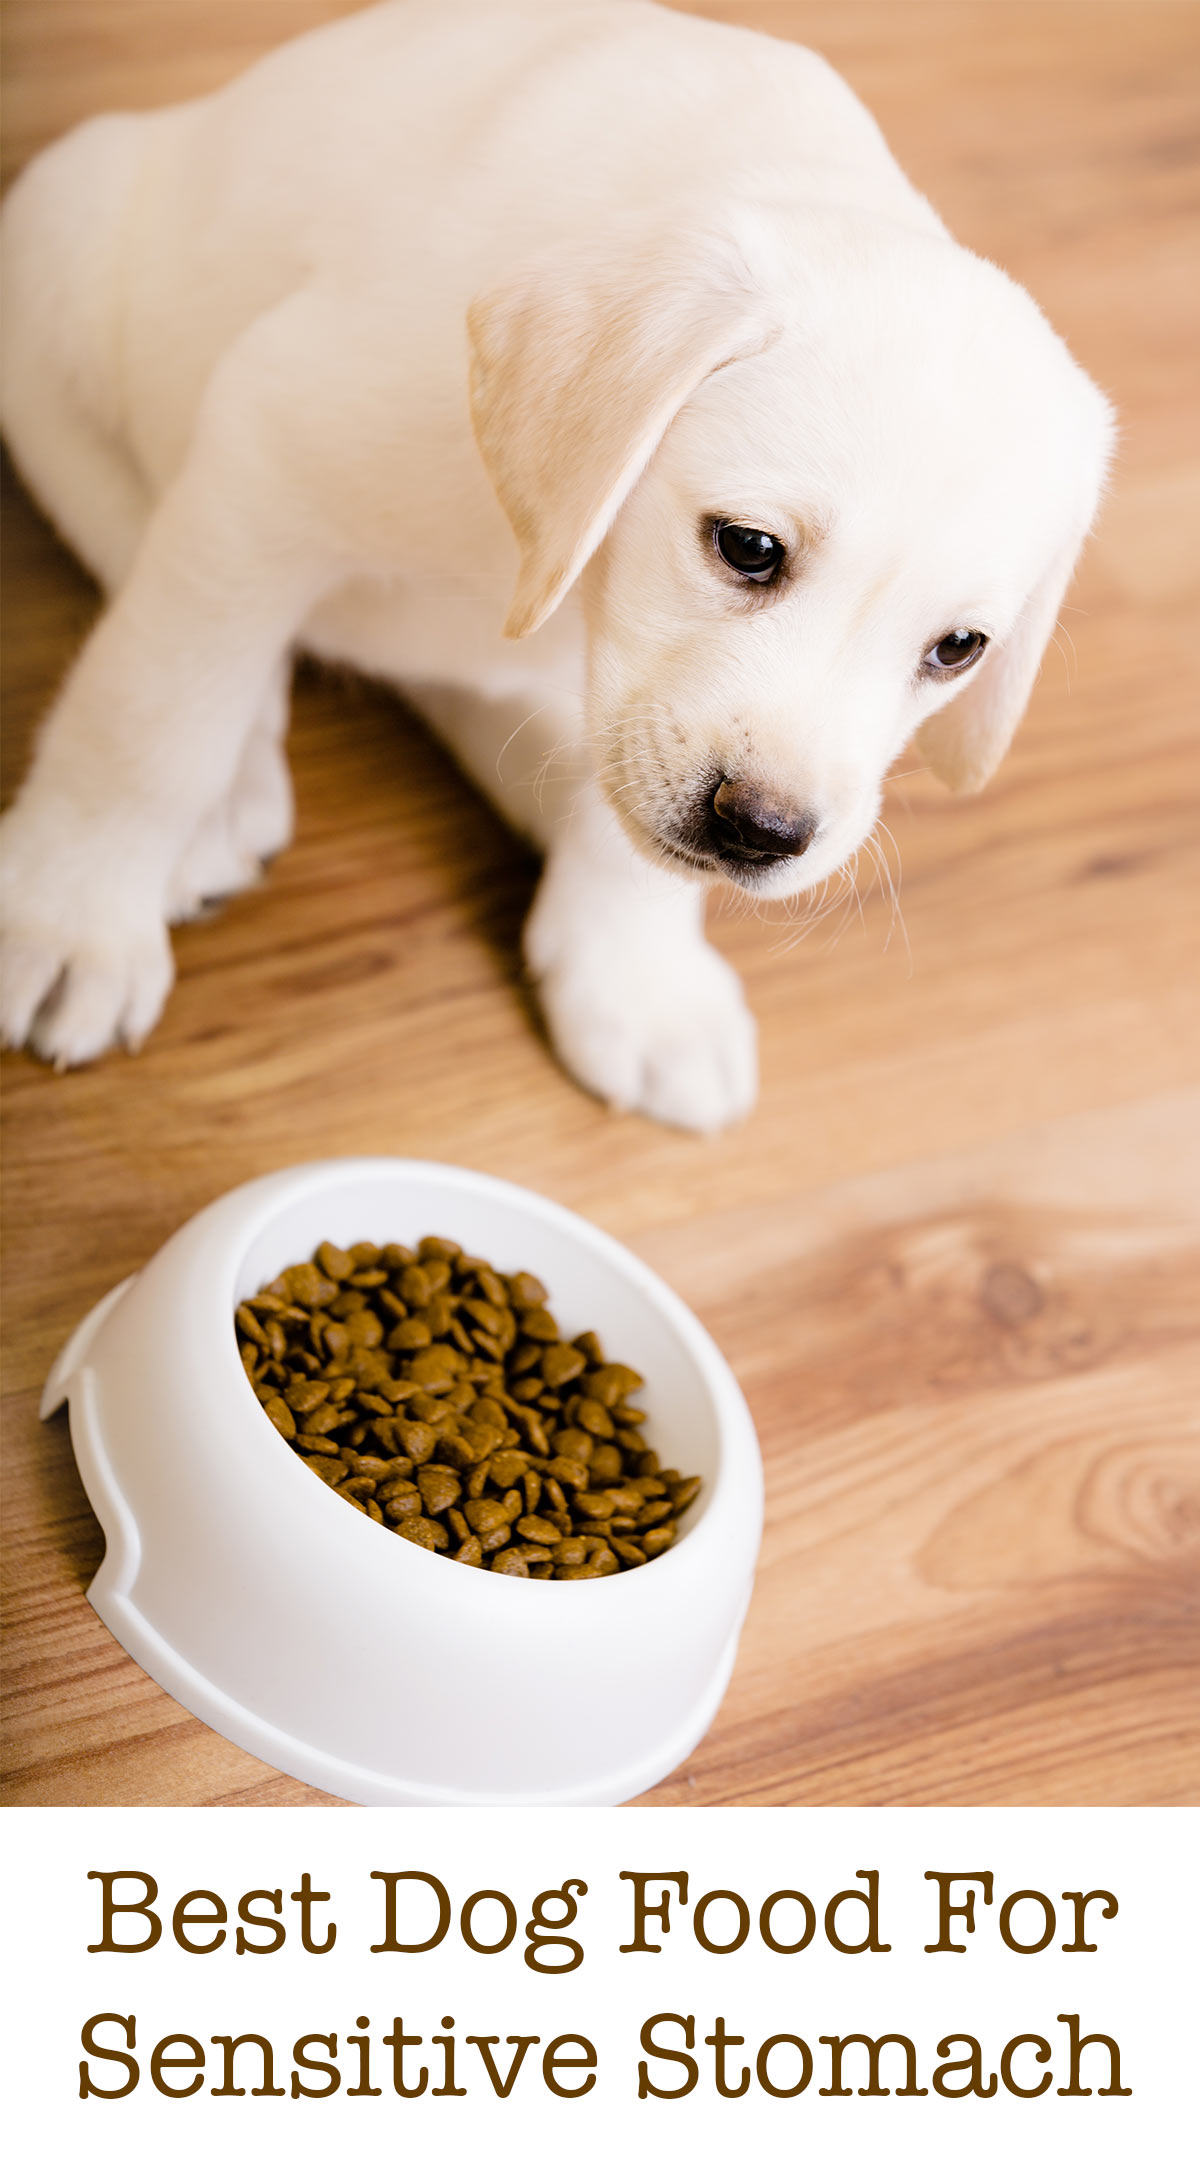 Best Grain Free Dog Food For Dogs With Sensitive Stomachs